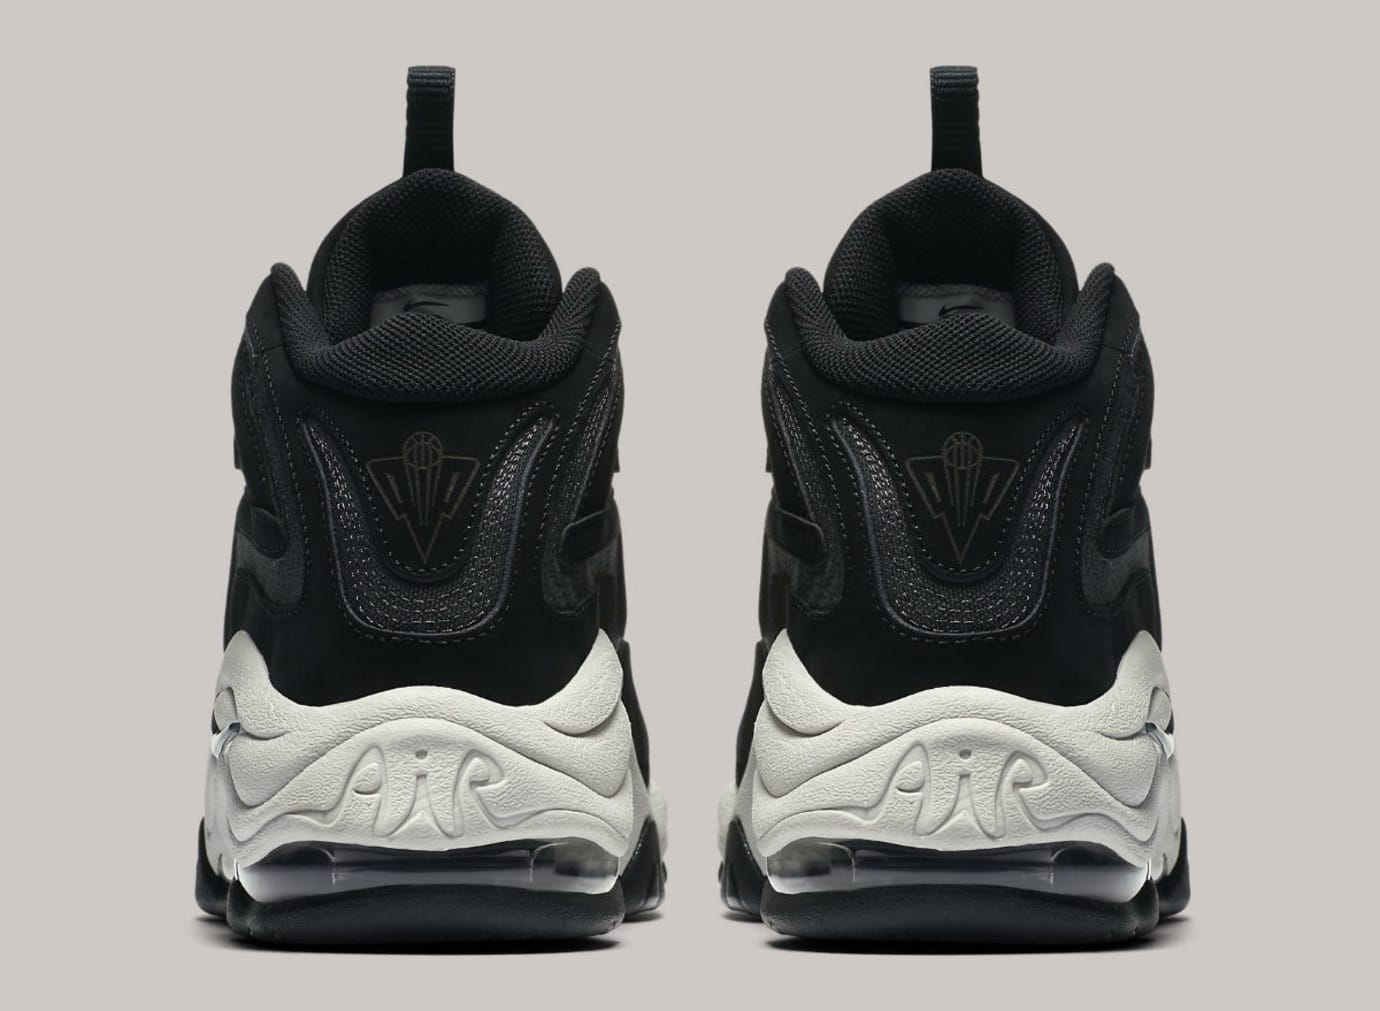 Nike Air Pippen Black Anthracite Vast Grey Release Date 325001-004 Heel